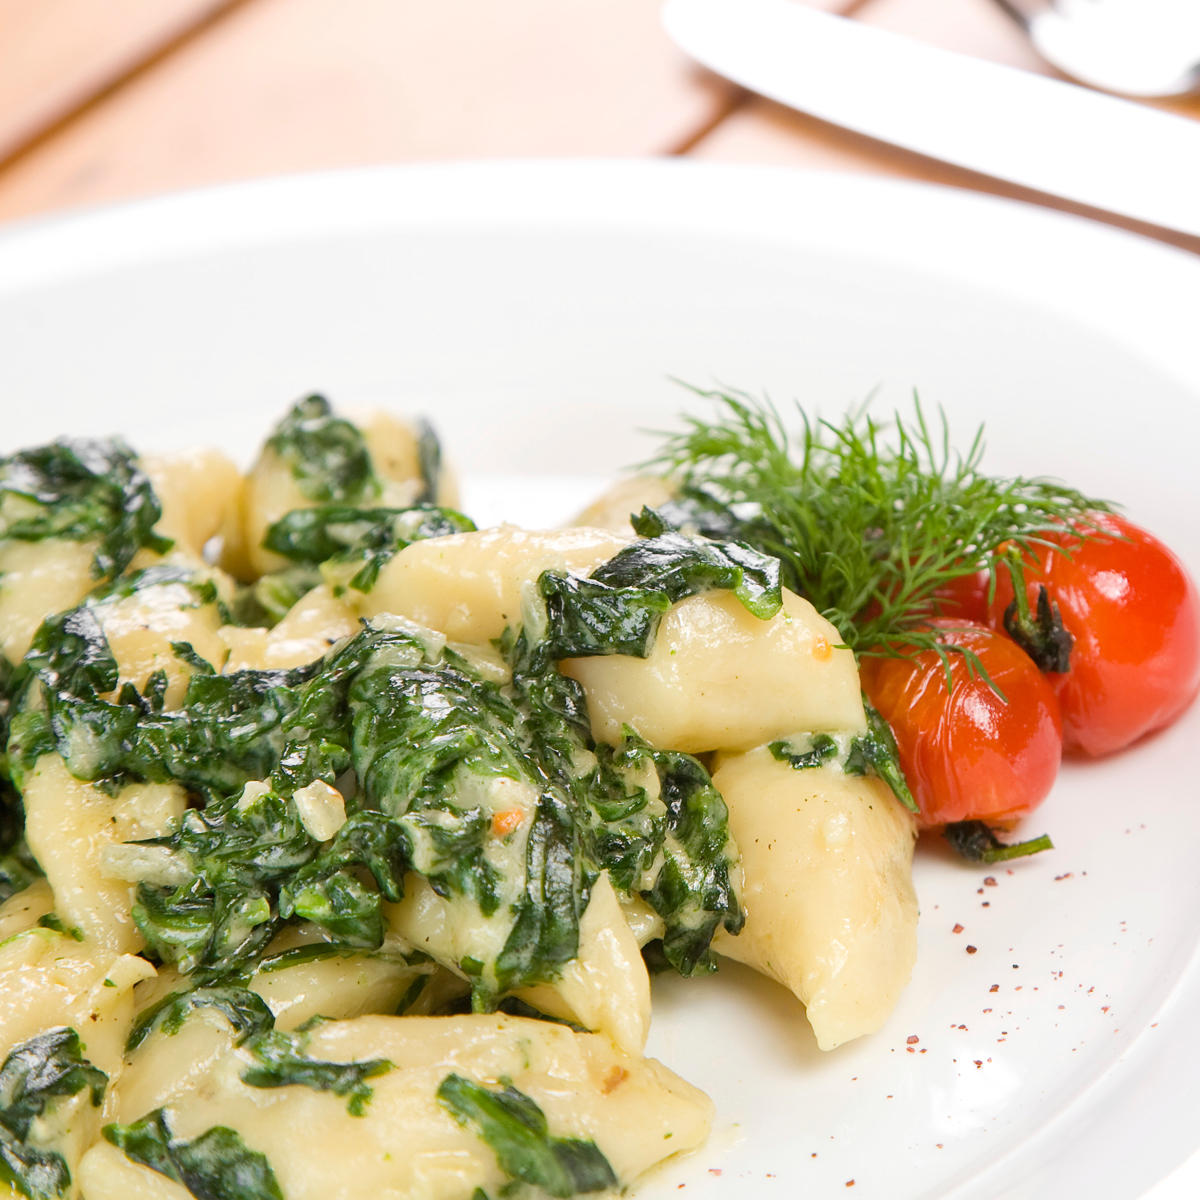 Potato Gnocchi with a puree of  Stinging Nettles, Spinach & Herbs